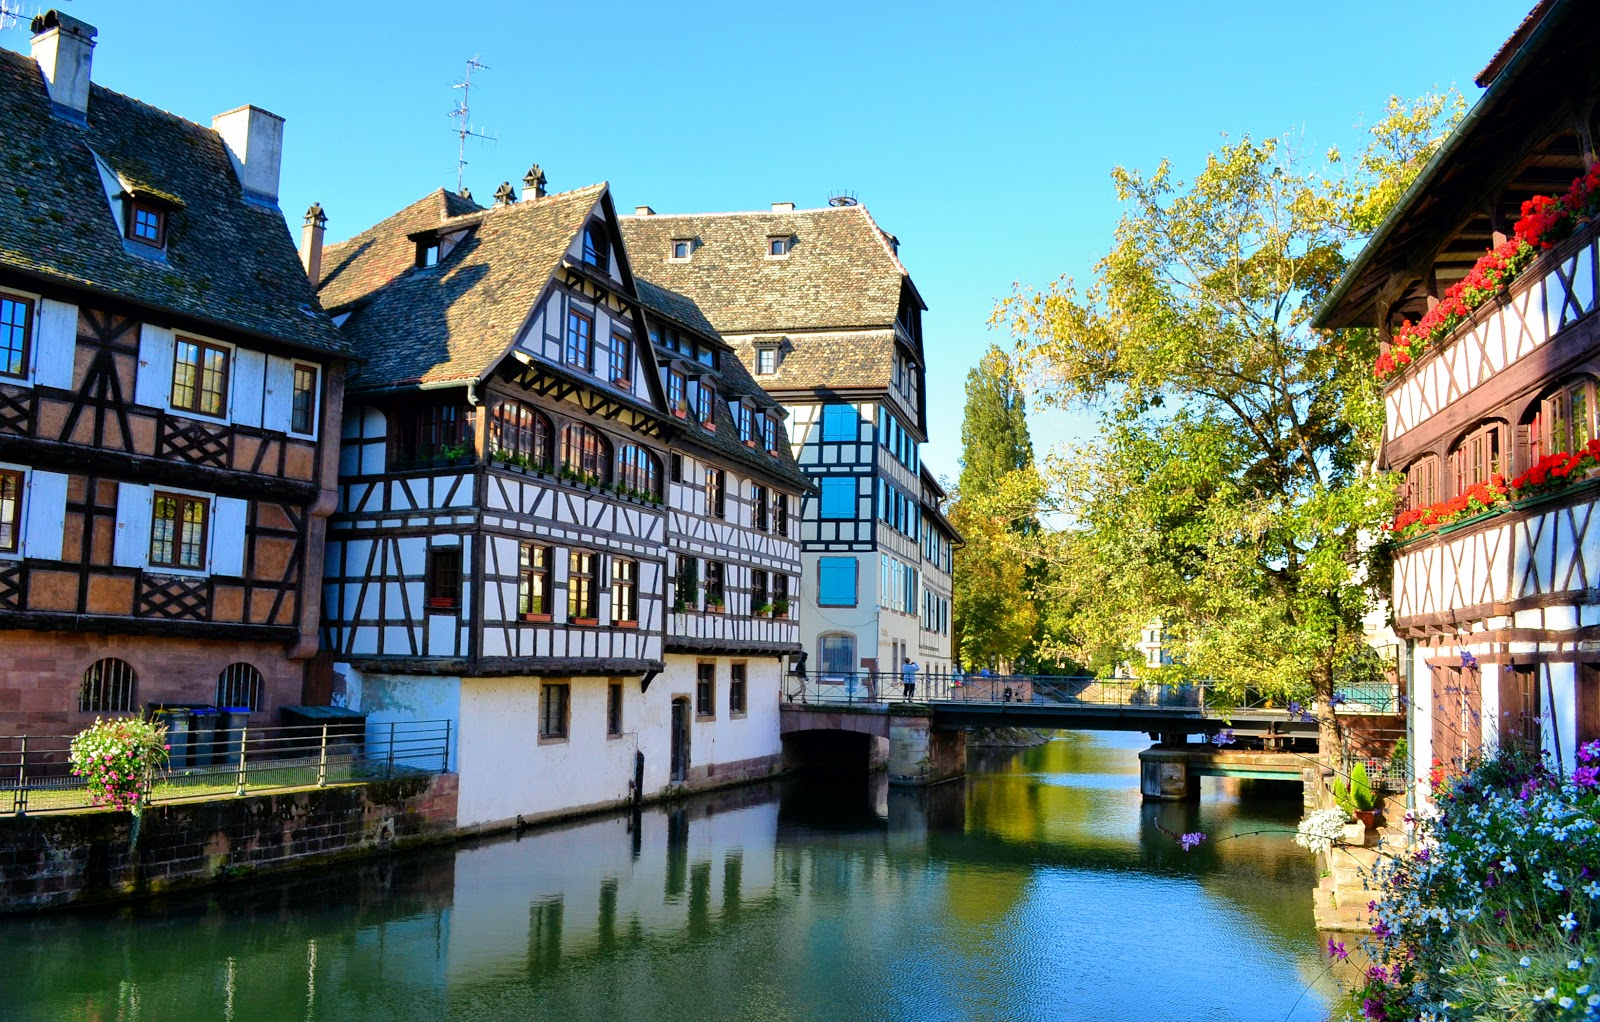 Visit 'Le Petite France' in Strasbourg when you hop on board Route 15. Photo: © EuroTravelogue.com. Unauthorized use is prohibited.